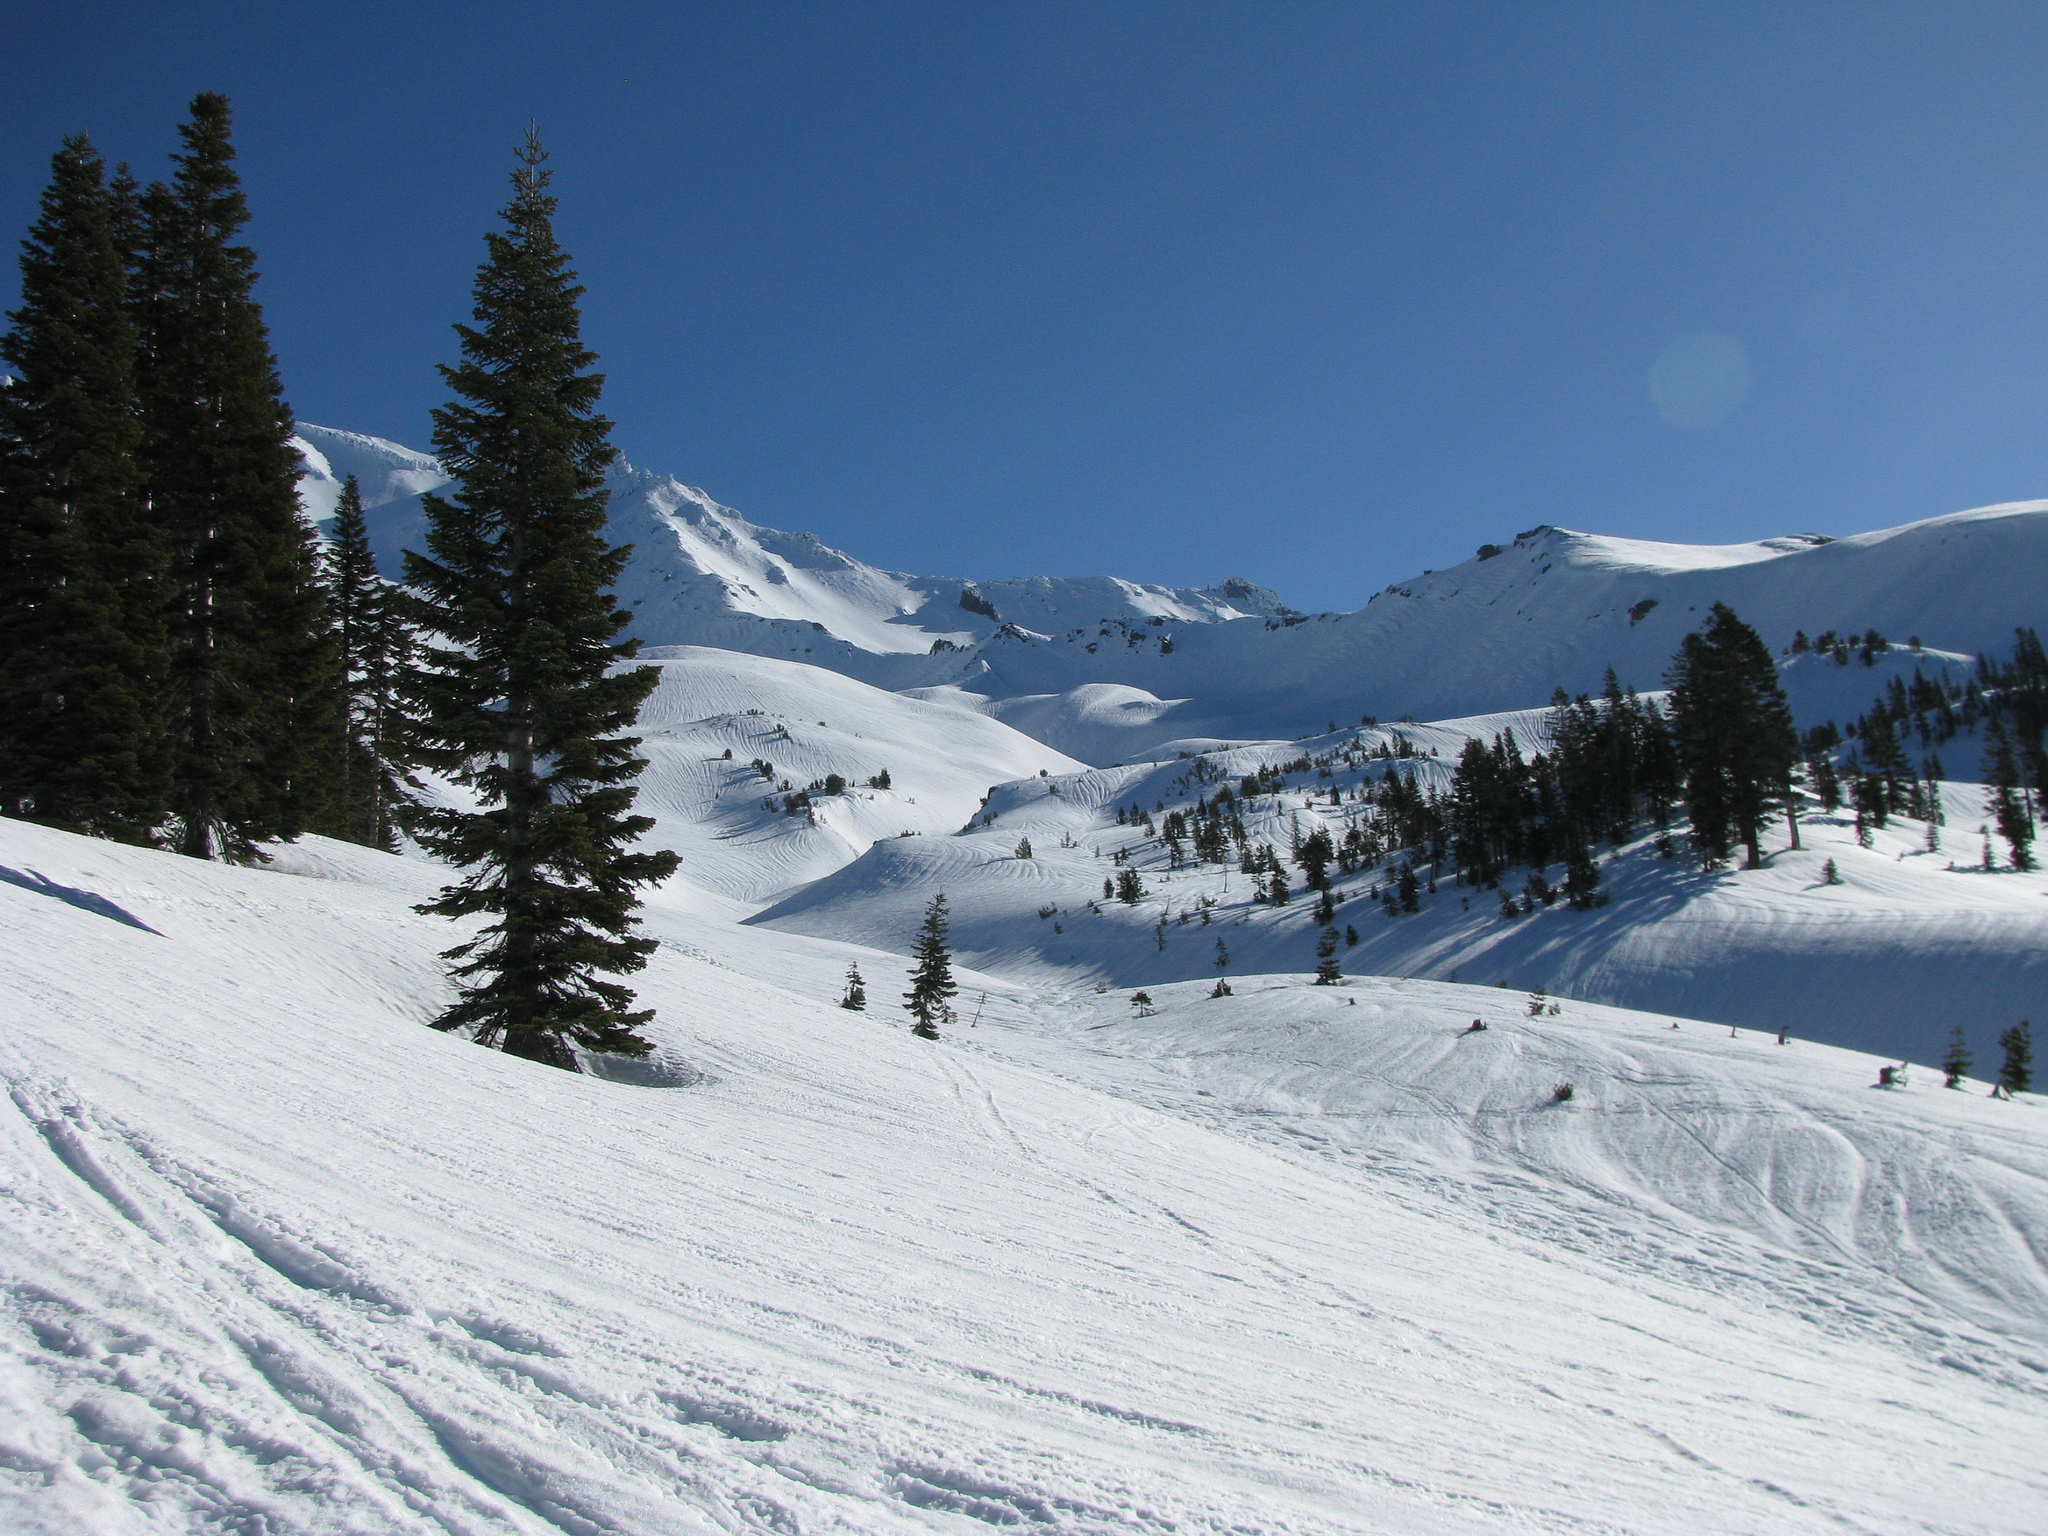 Mount Shasta is among the cheapest ski resorts in America ... photo by CC user 41205764@N08 on Flickr